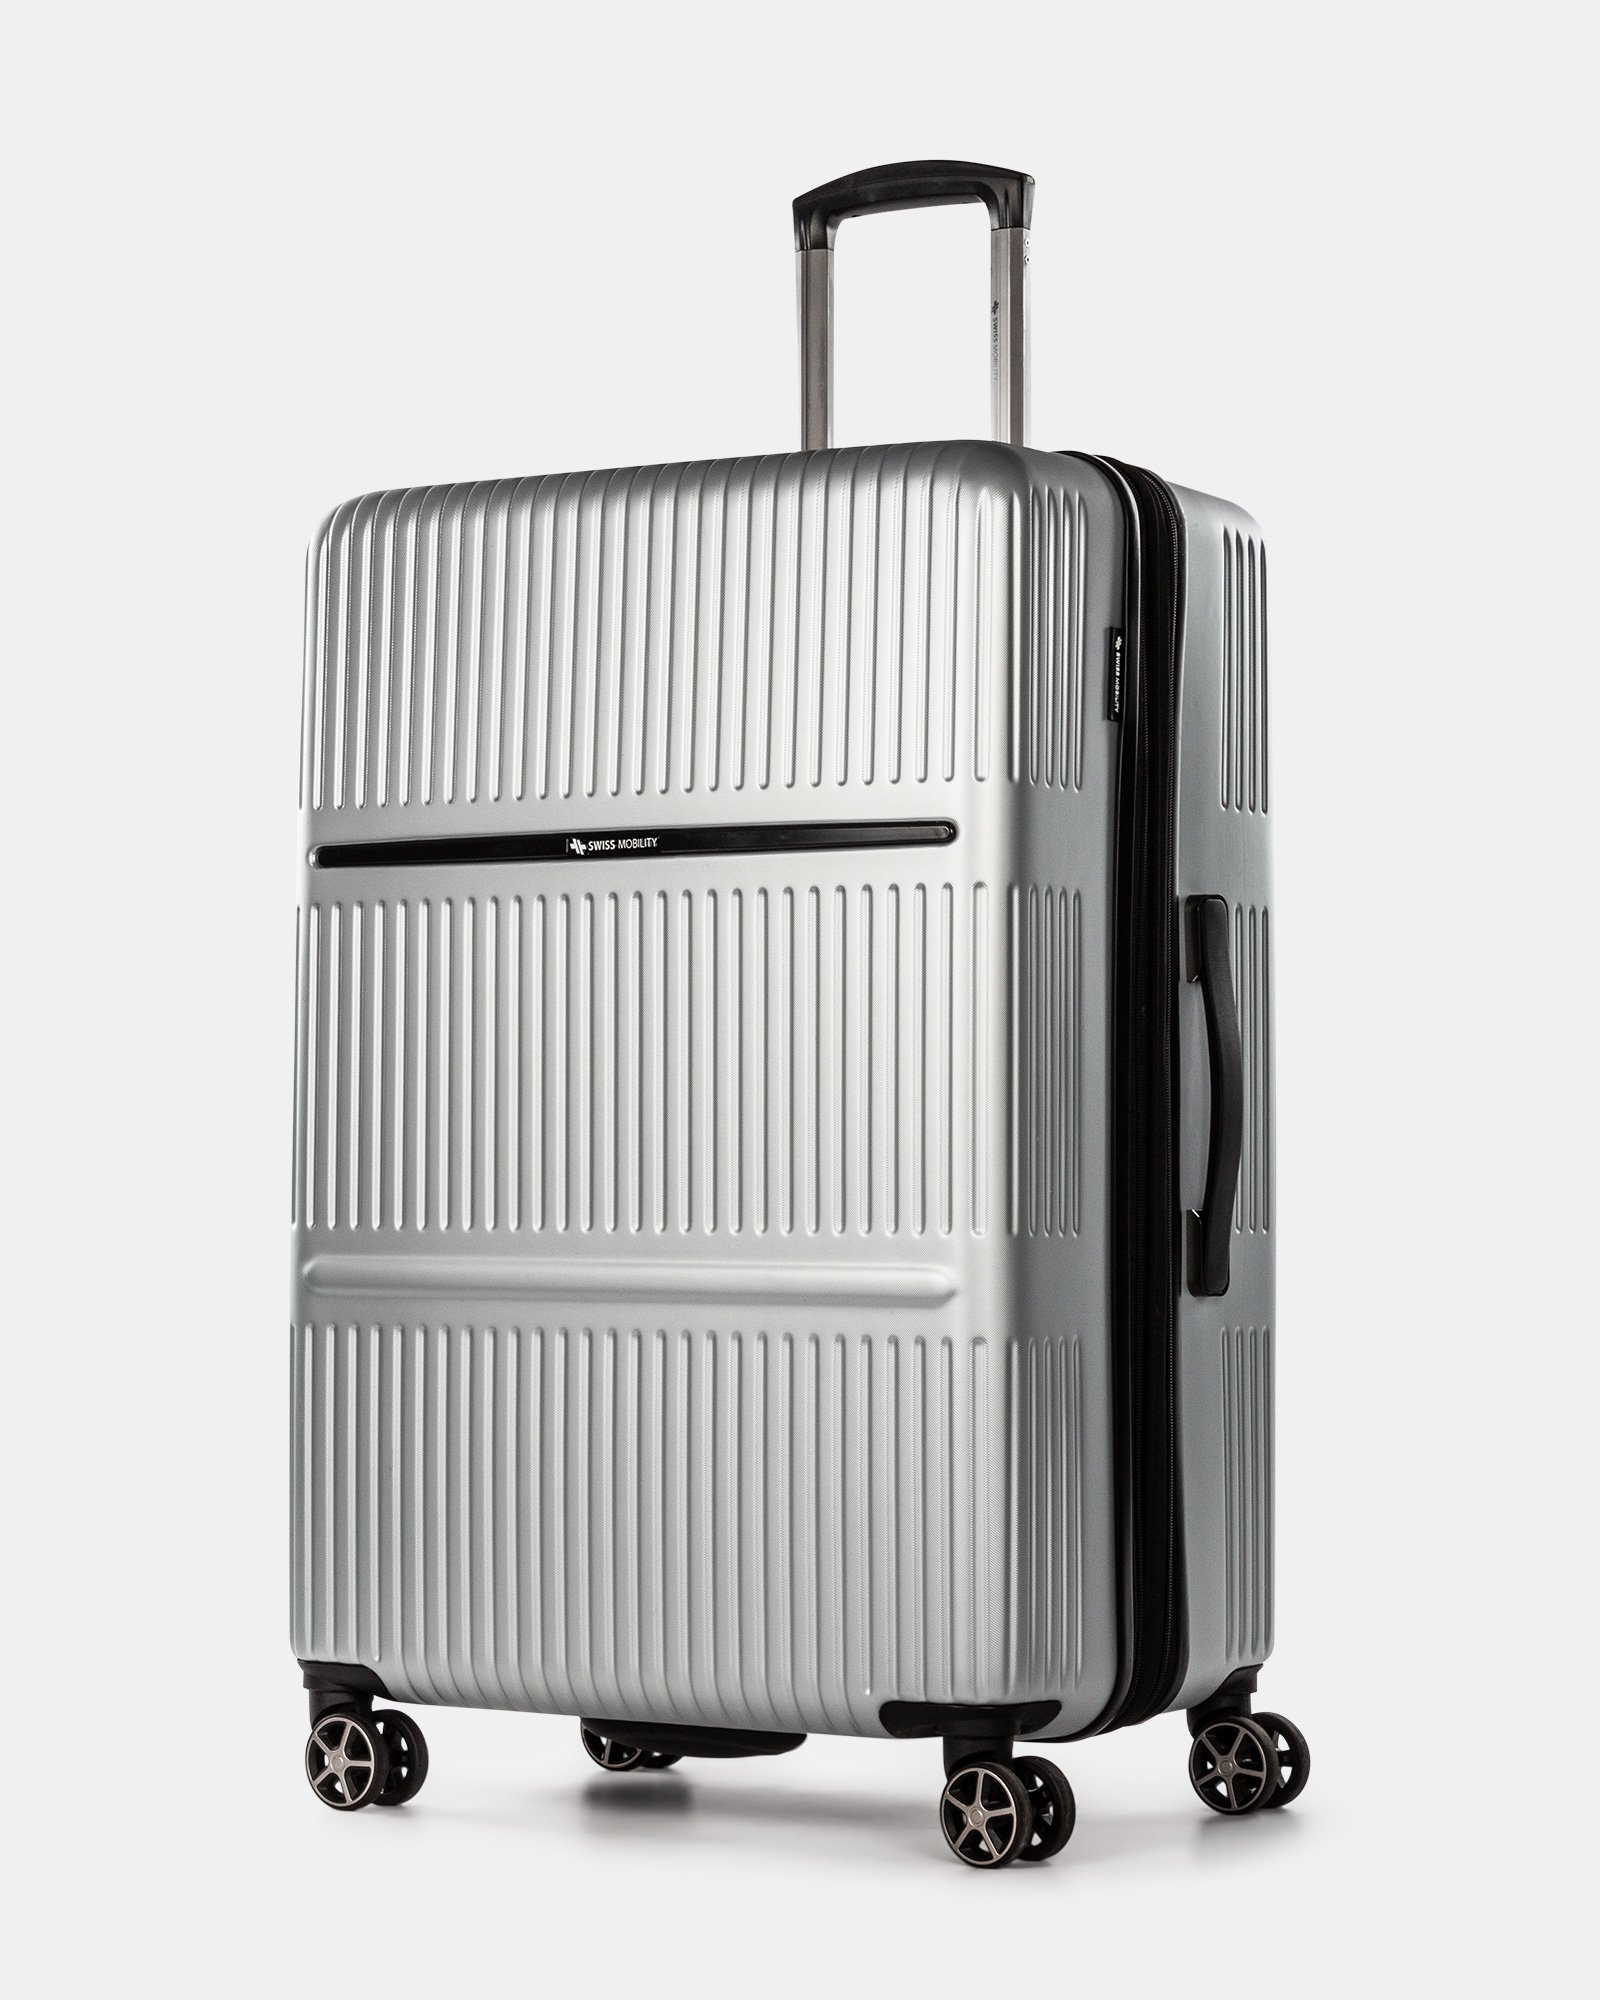 Highway-Hardside Luggage 28'' - Swiss Mobility - Zoom